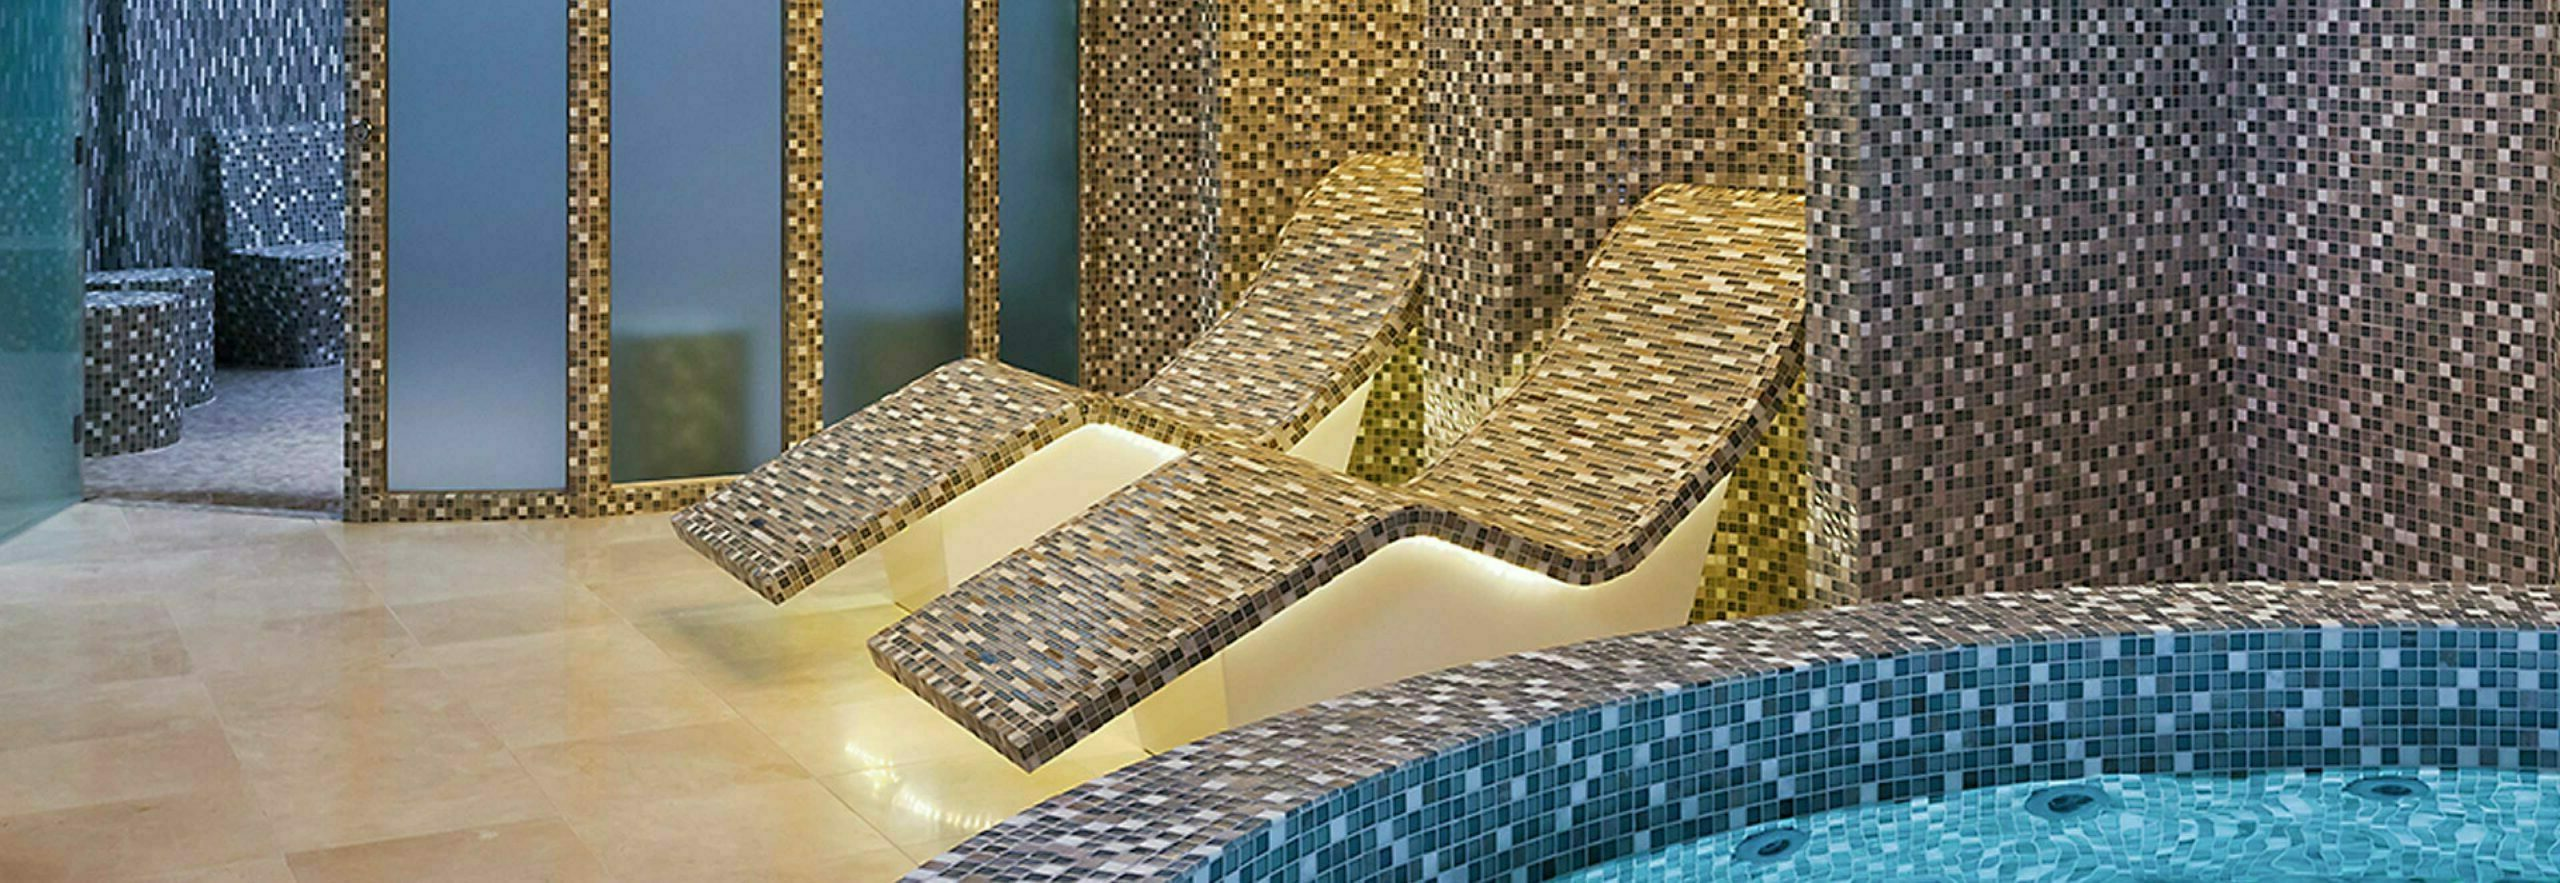 http://Bradford%20Home%20Heated%20Loungers%20Tile%20Top